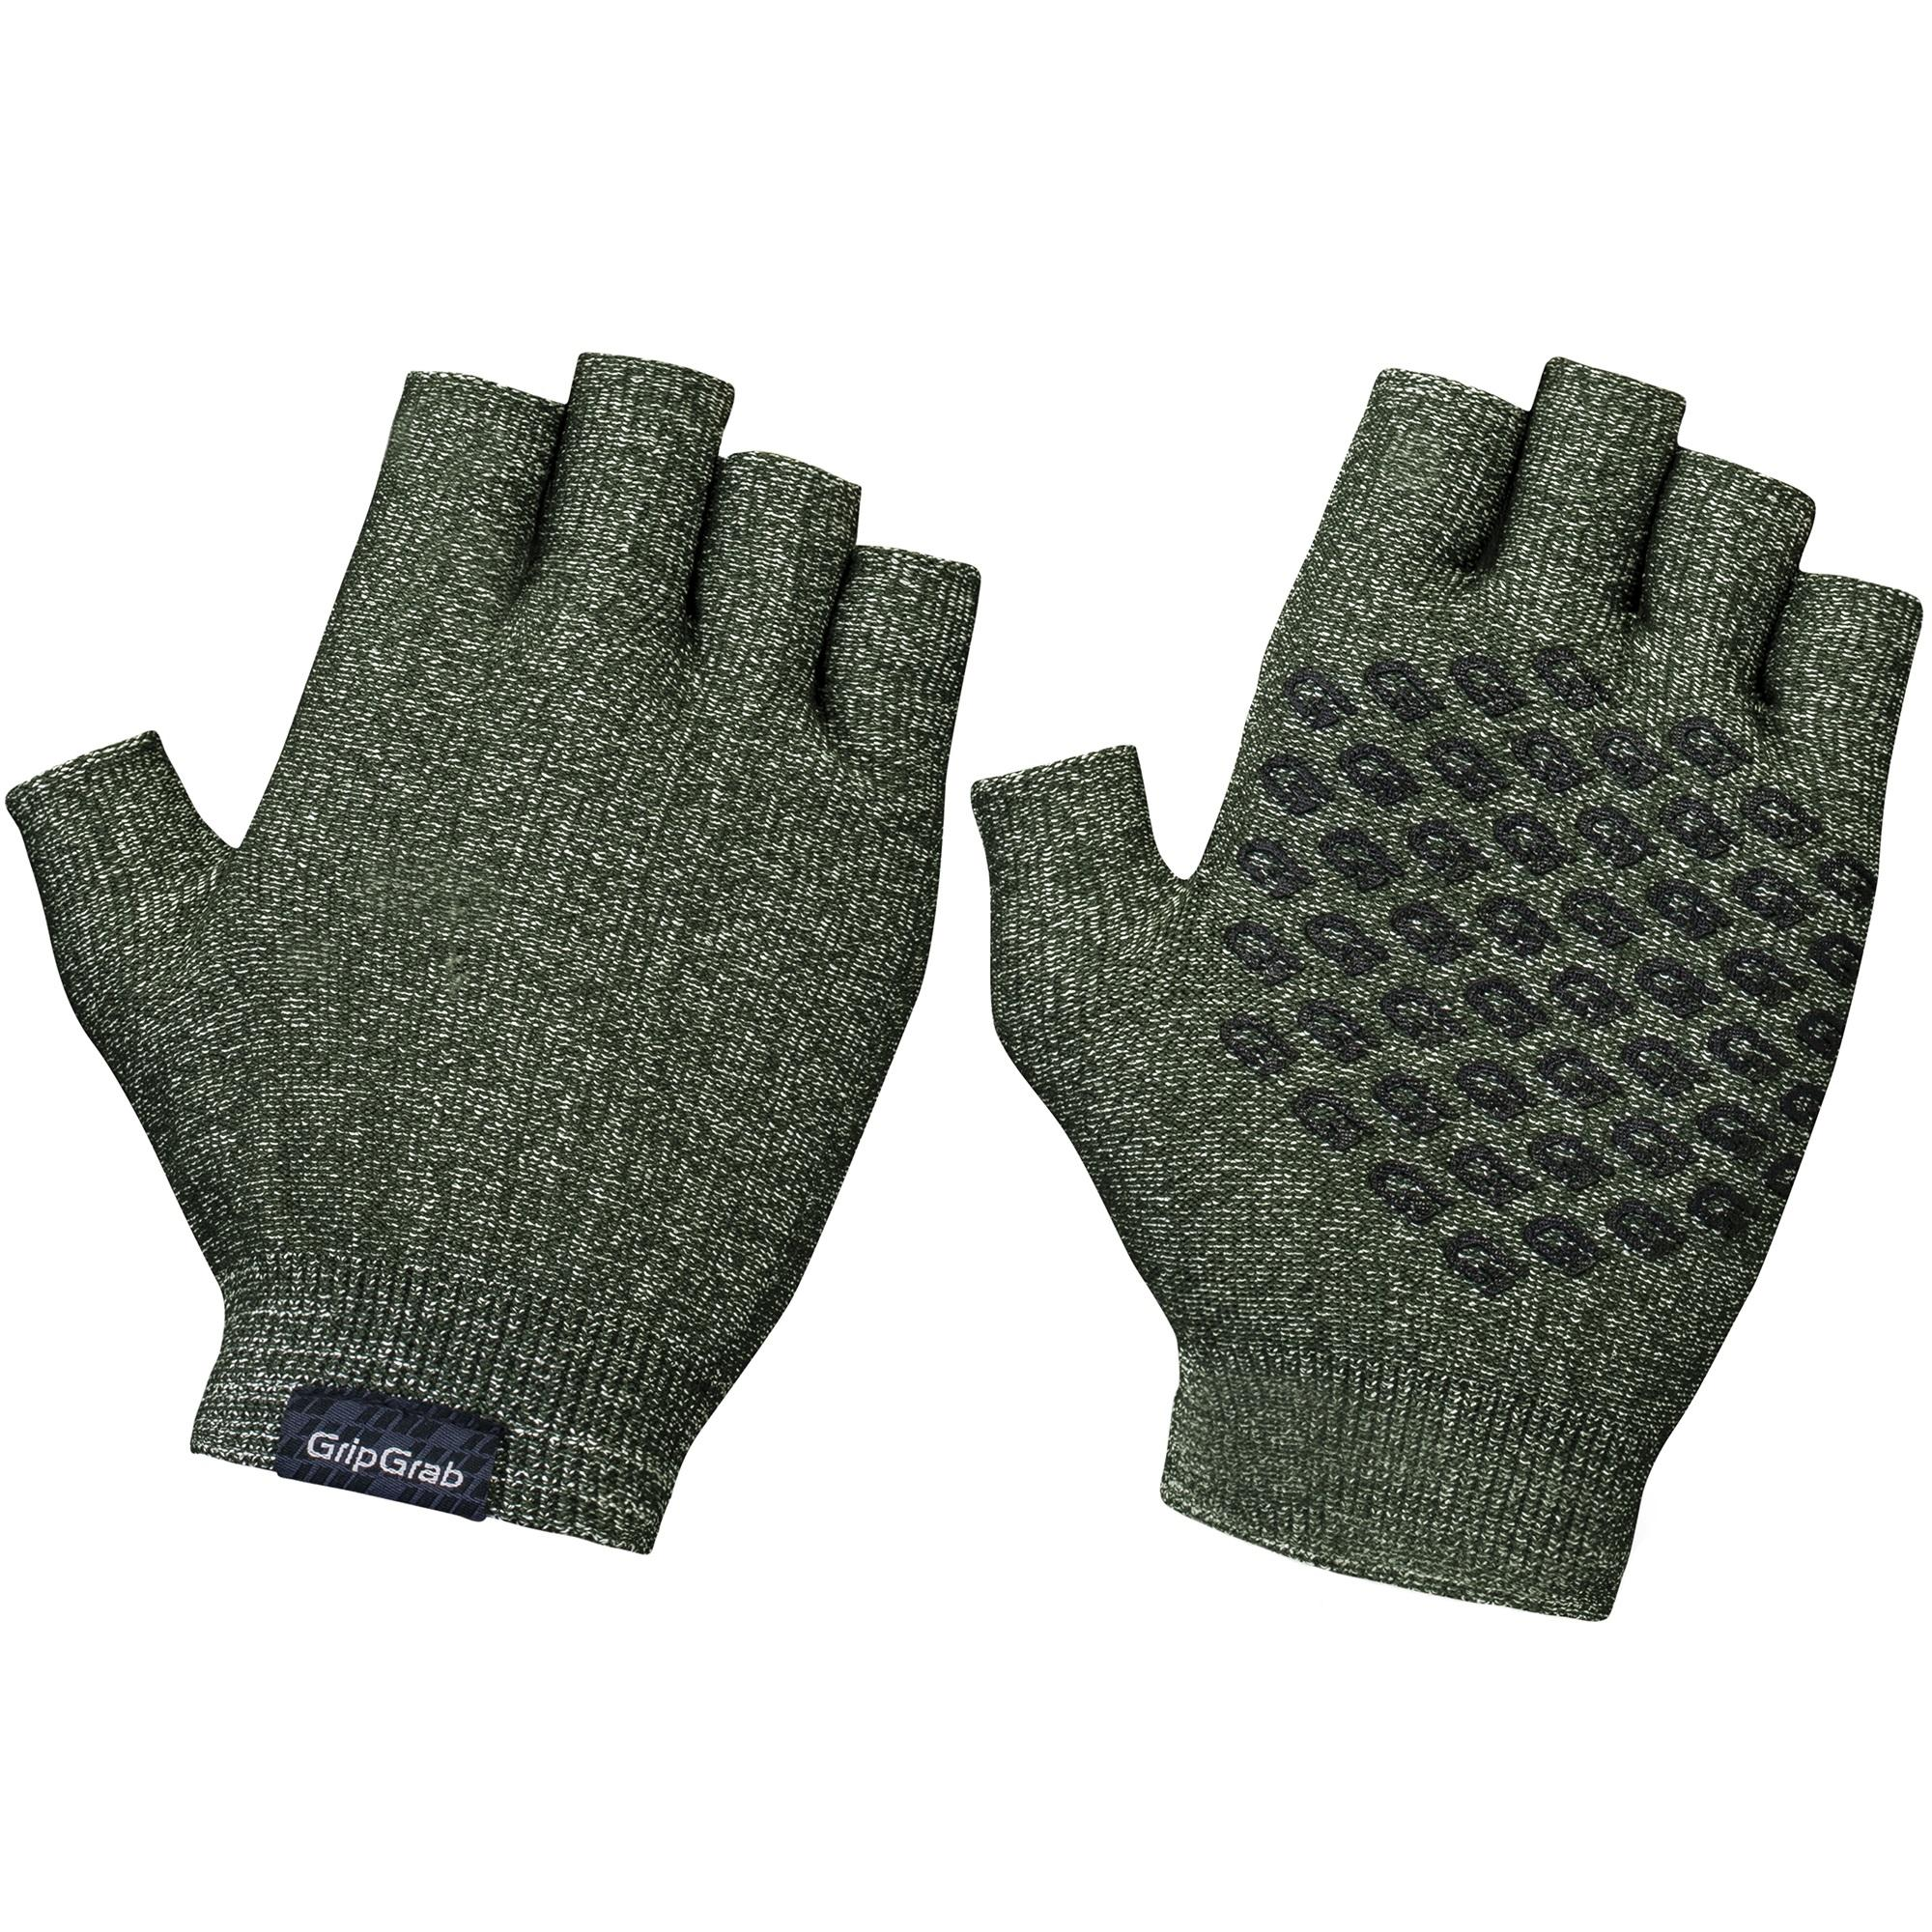 Afbeelding GripGrab Fietshandschoenen Zomer Unisex Olijfgroen - Freedom Knitted Short Finger Cycling Glove Olive